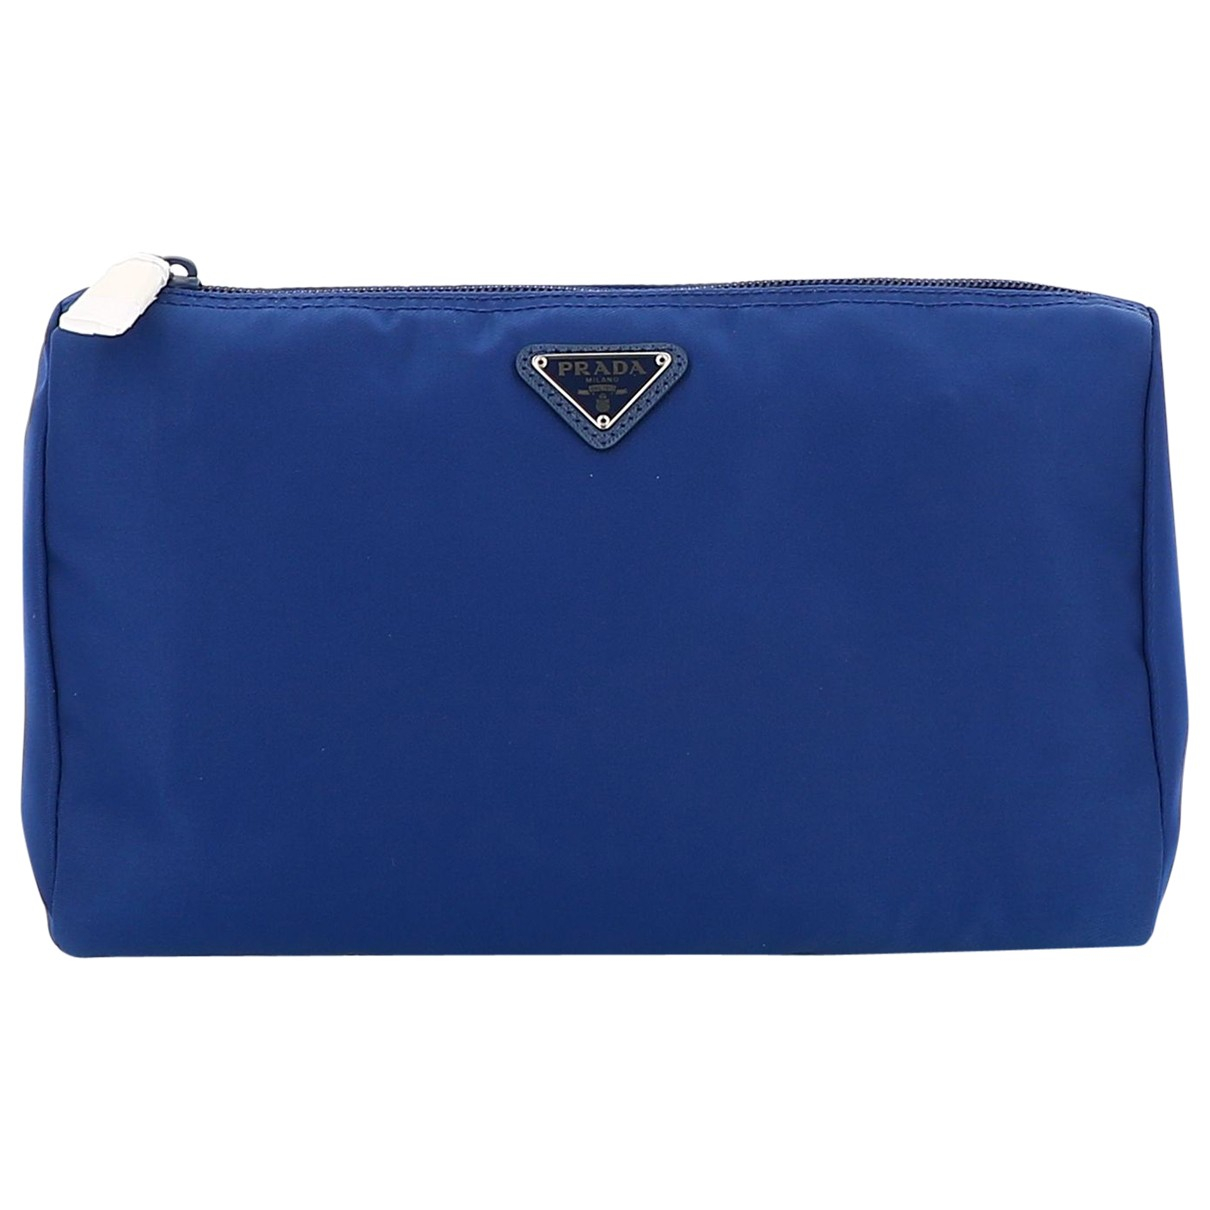 Prada N Blue Cloth Travel bag for Women N